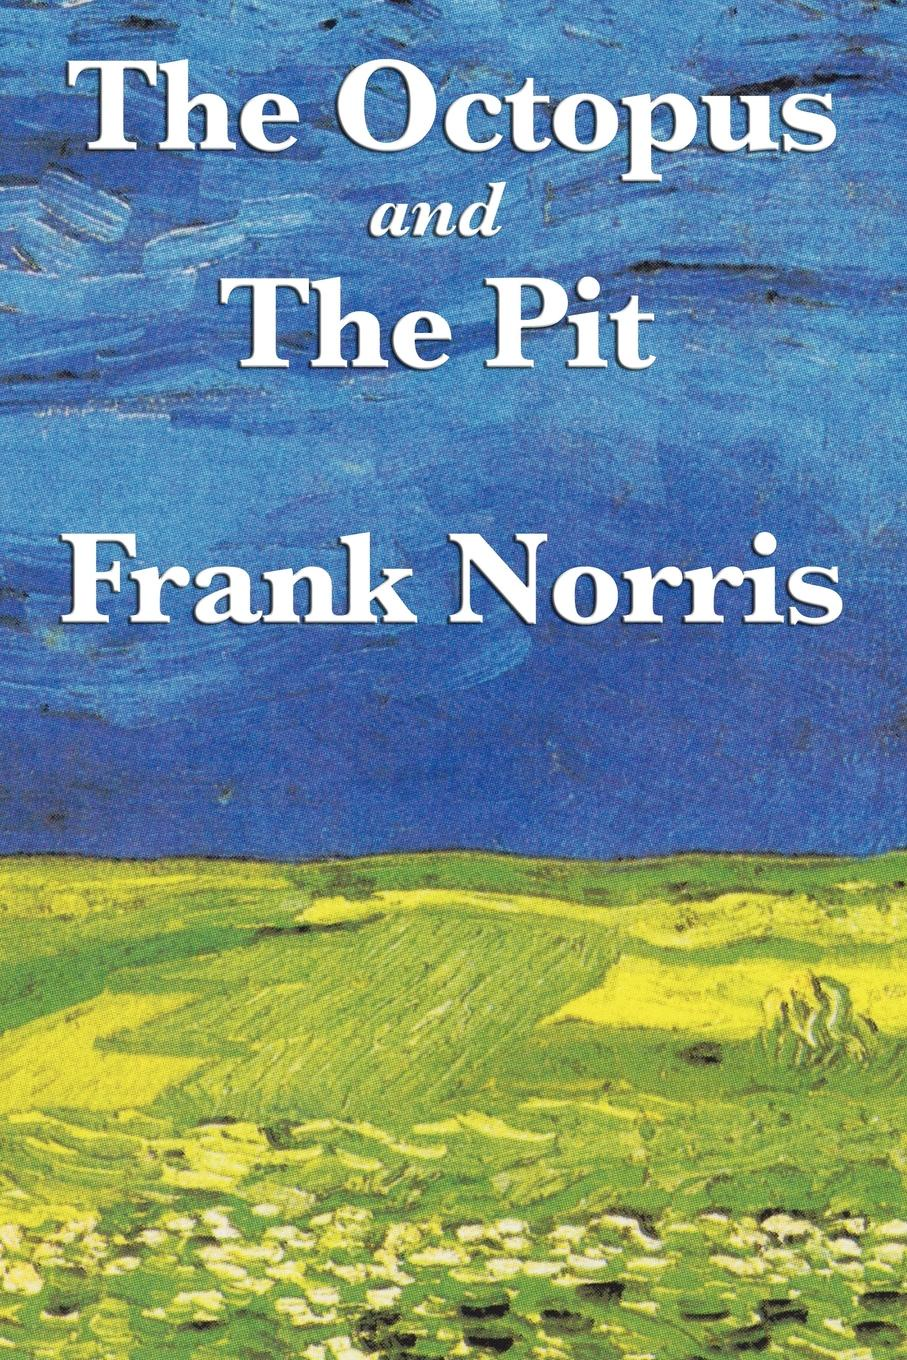 Frank Norris The Octopus. A Story of California and the Pit: A Story of Chicago takashi murakami the octopus eats its own leg